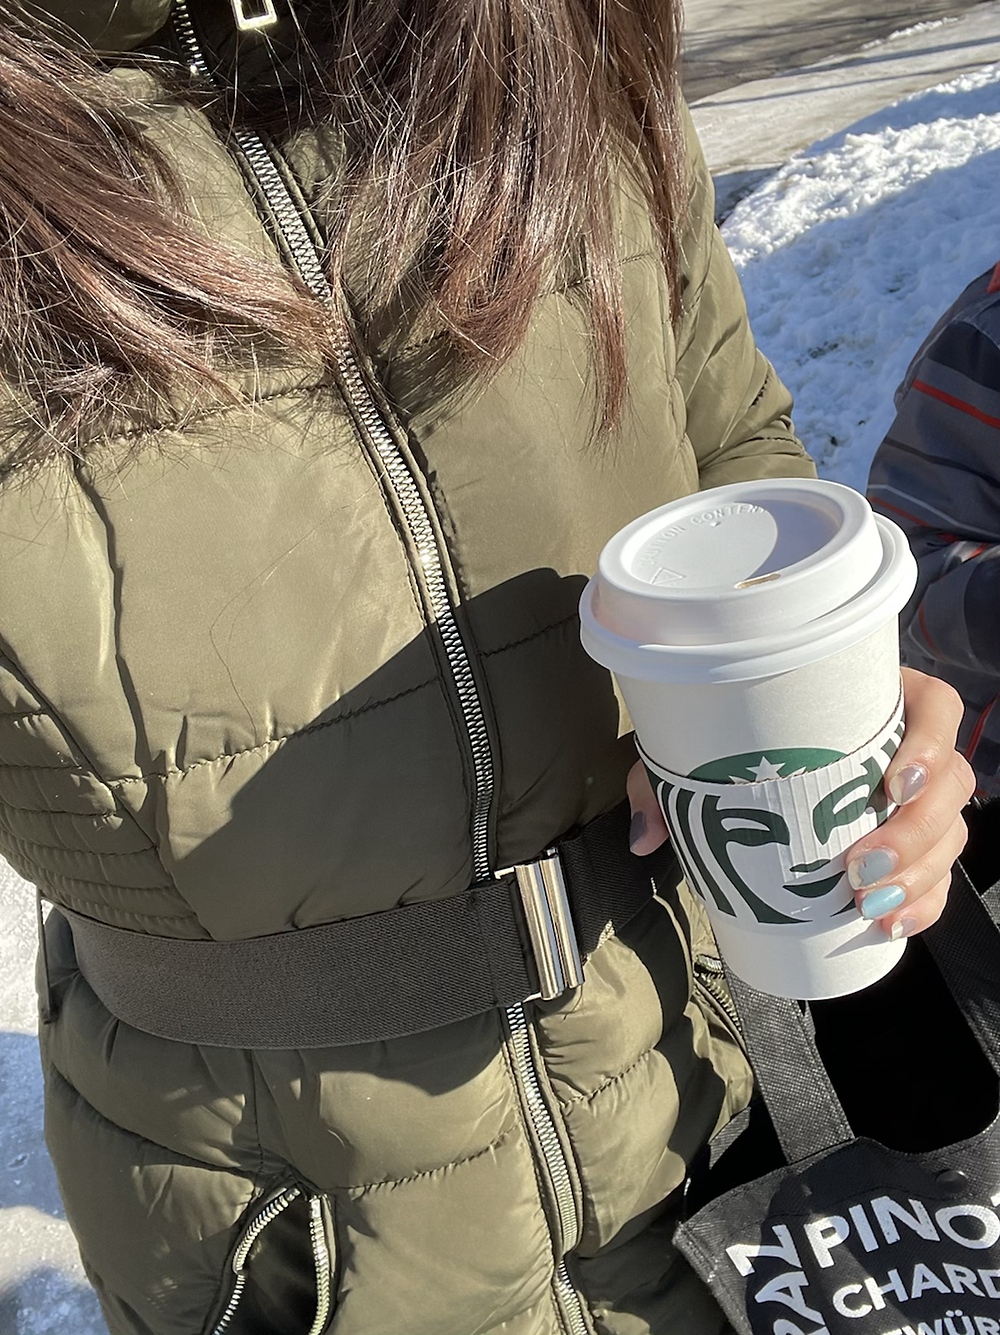 Starbucks, winter walk, life balance, treat yourself